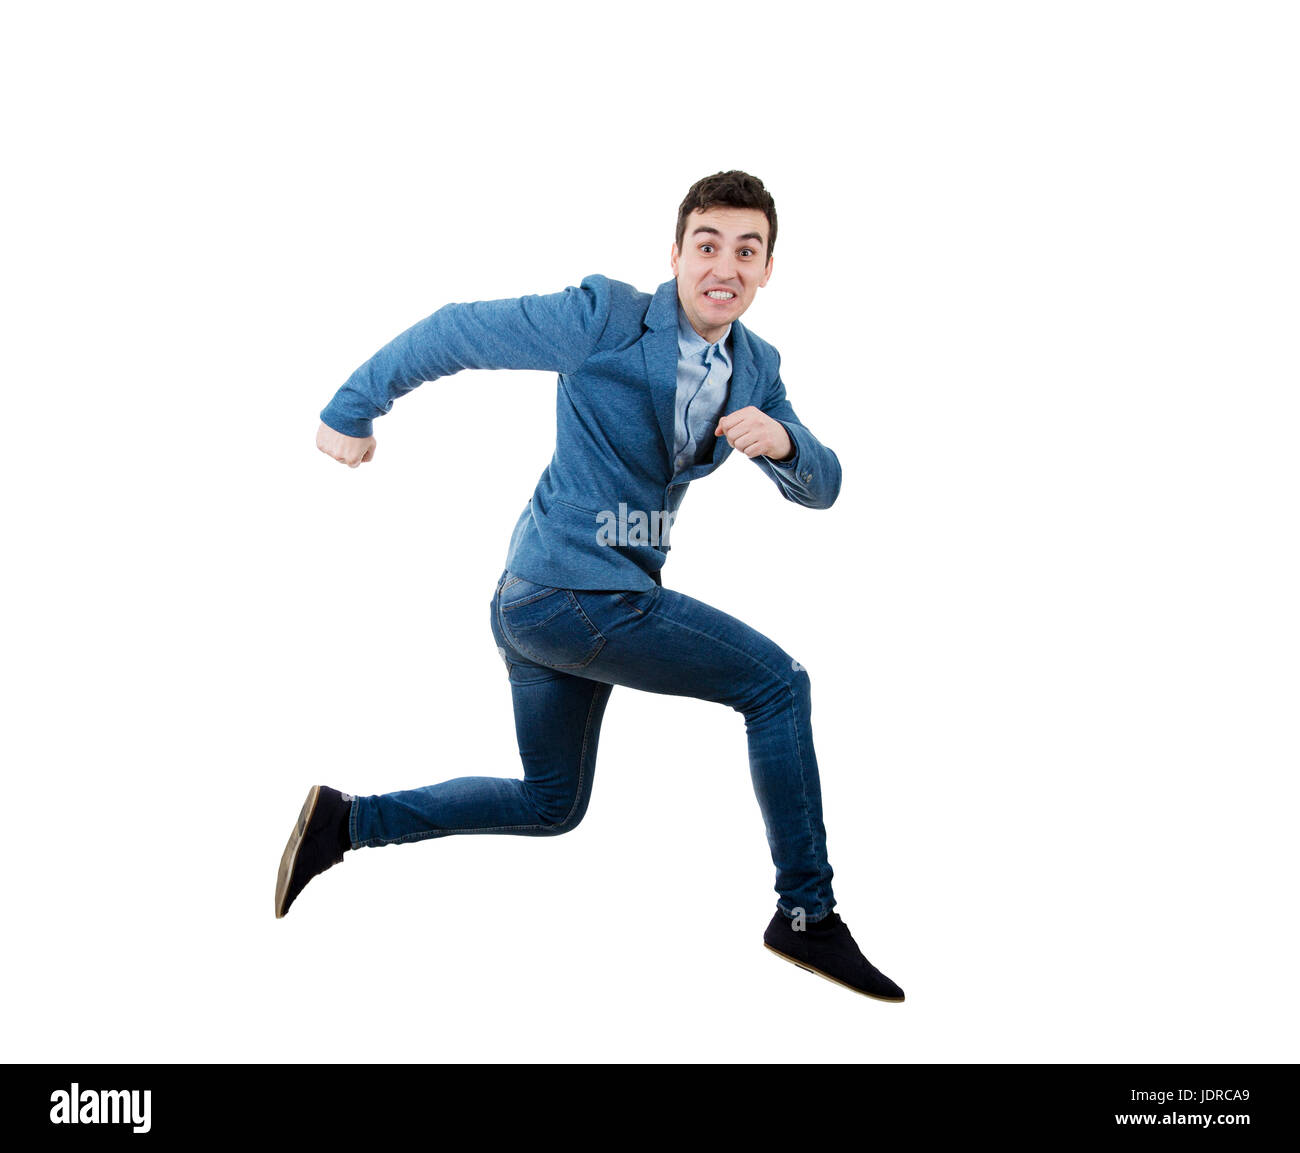 Businessman running and jumping over obstacle with a fearful expression. - Stock Image